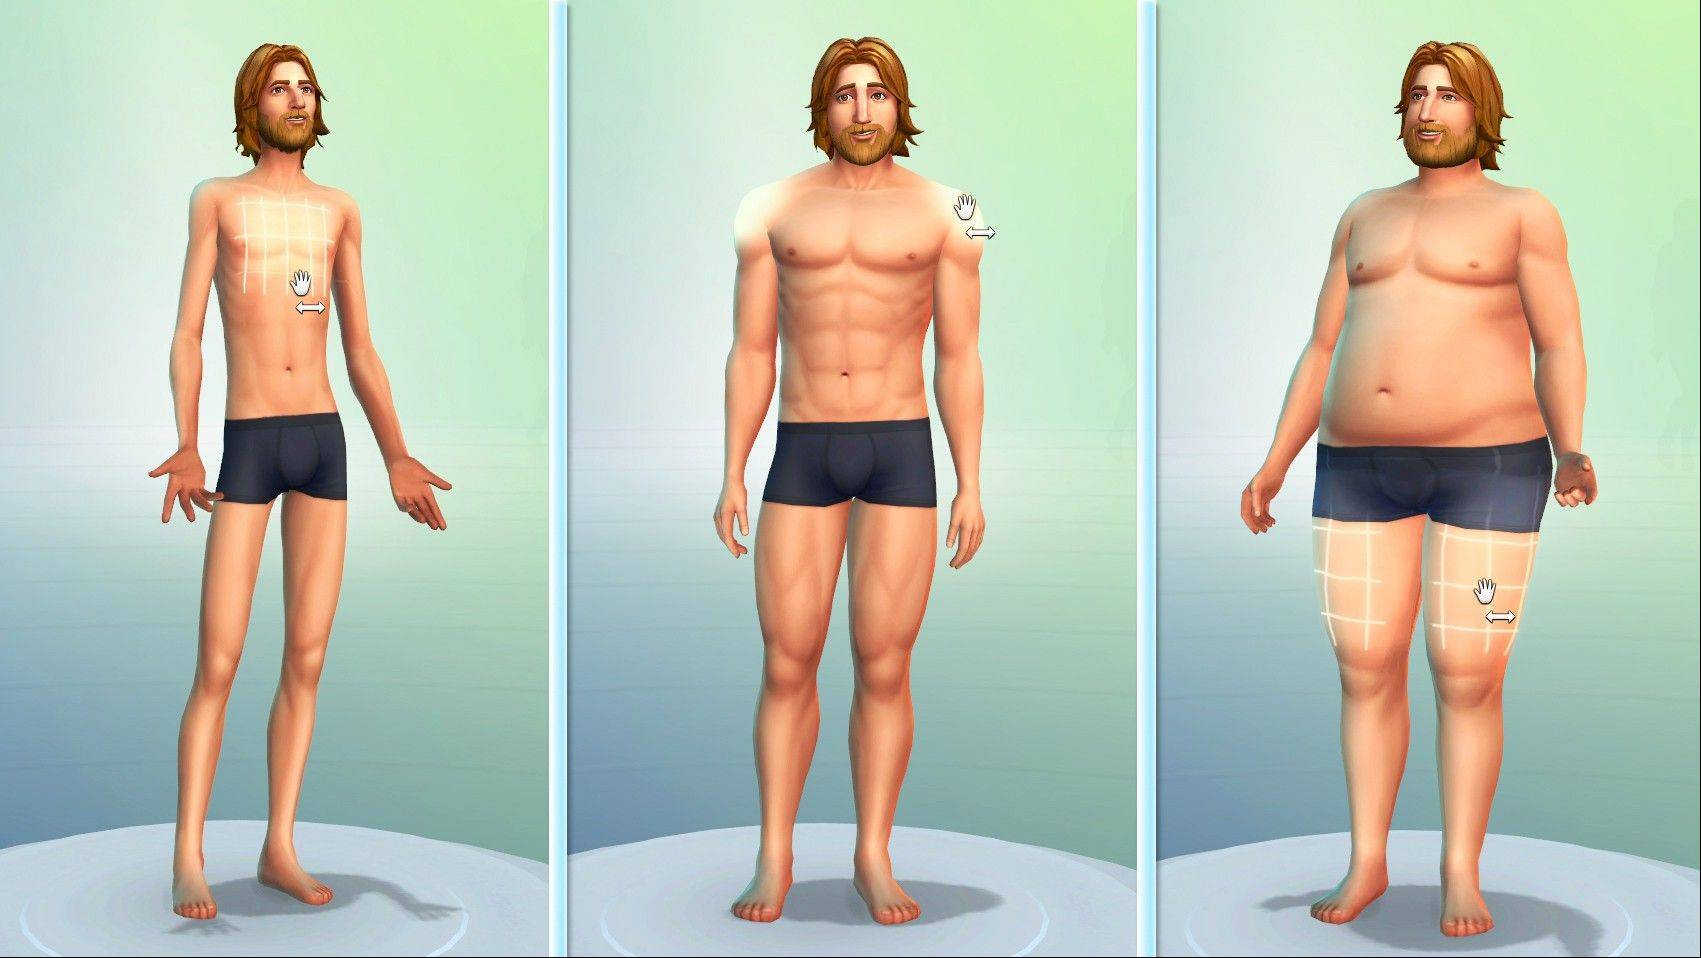 """The Sims 4"" includes 18 touch points on the Sims' bodies, which can be sculpted to create custom faces and physiques."